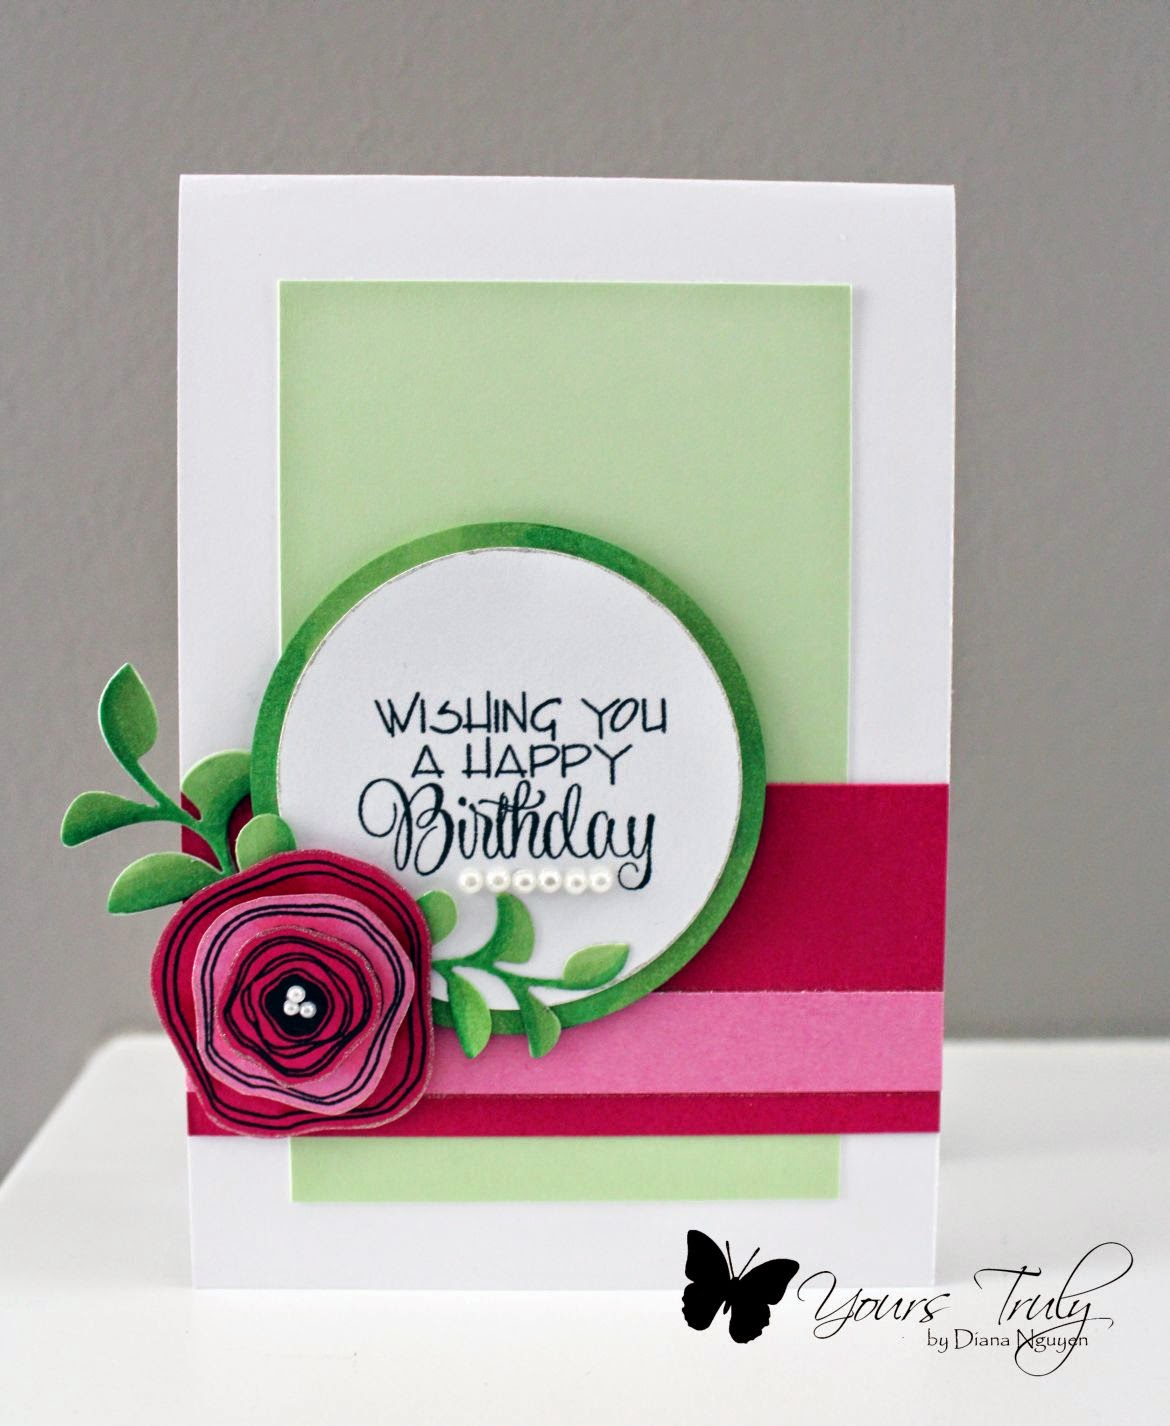 Diana Nguyen, Verve, poppy birthday, card